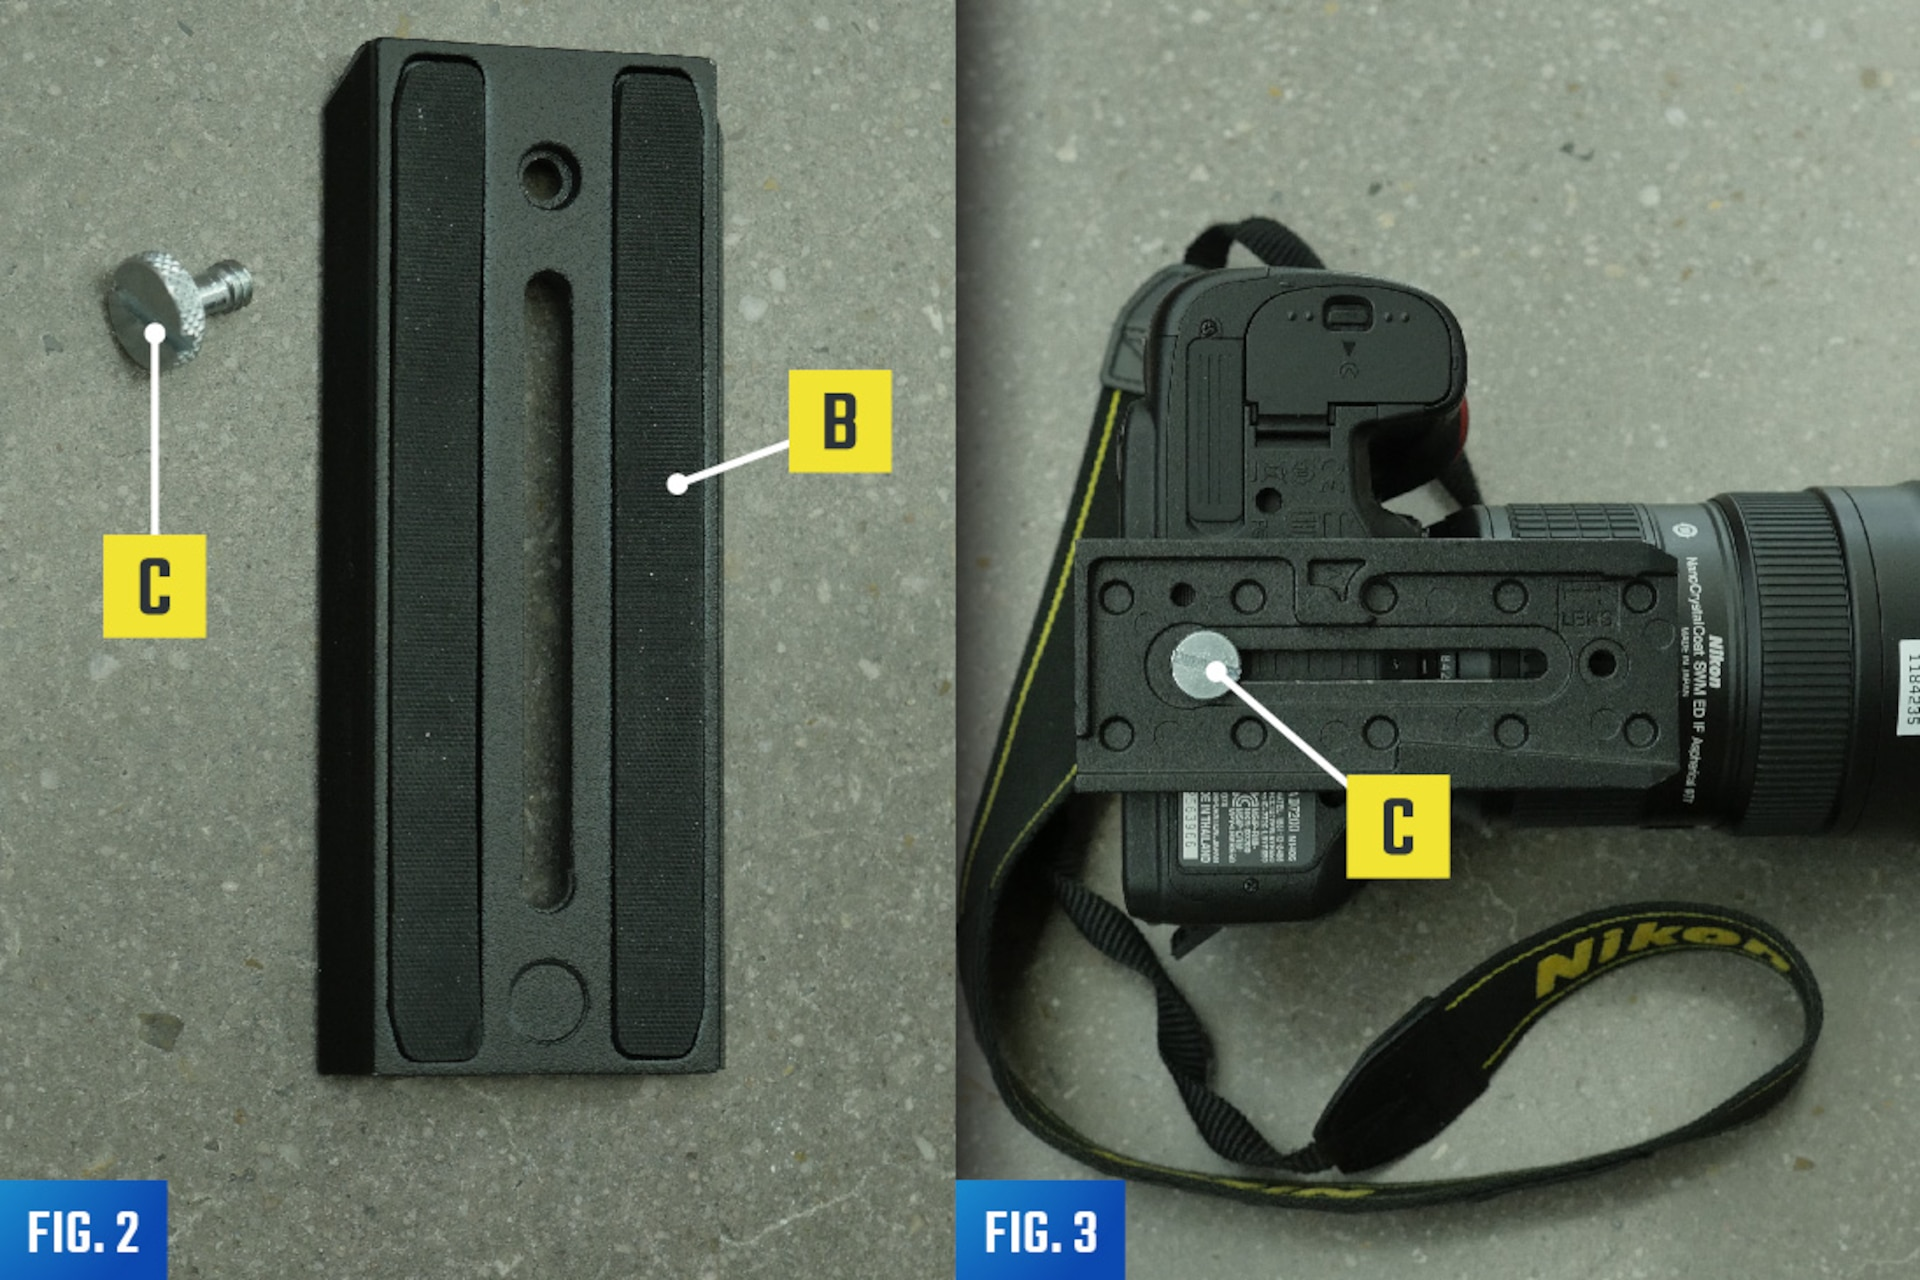 Fitting the Quick Release Plate to a Camera/Audio Recorder